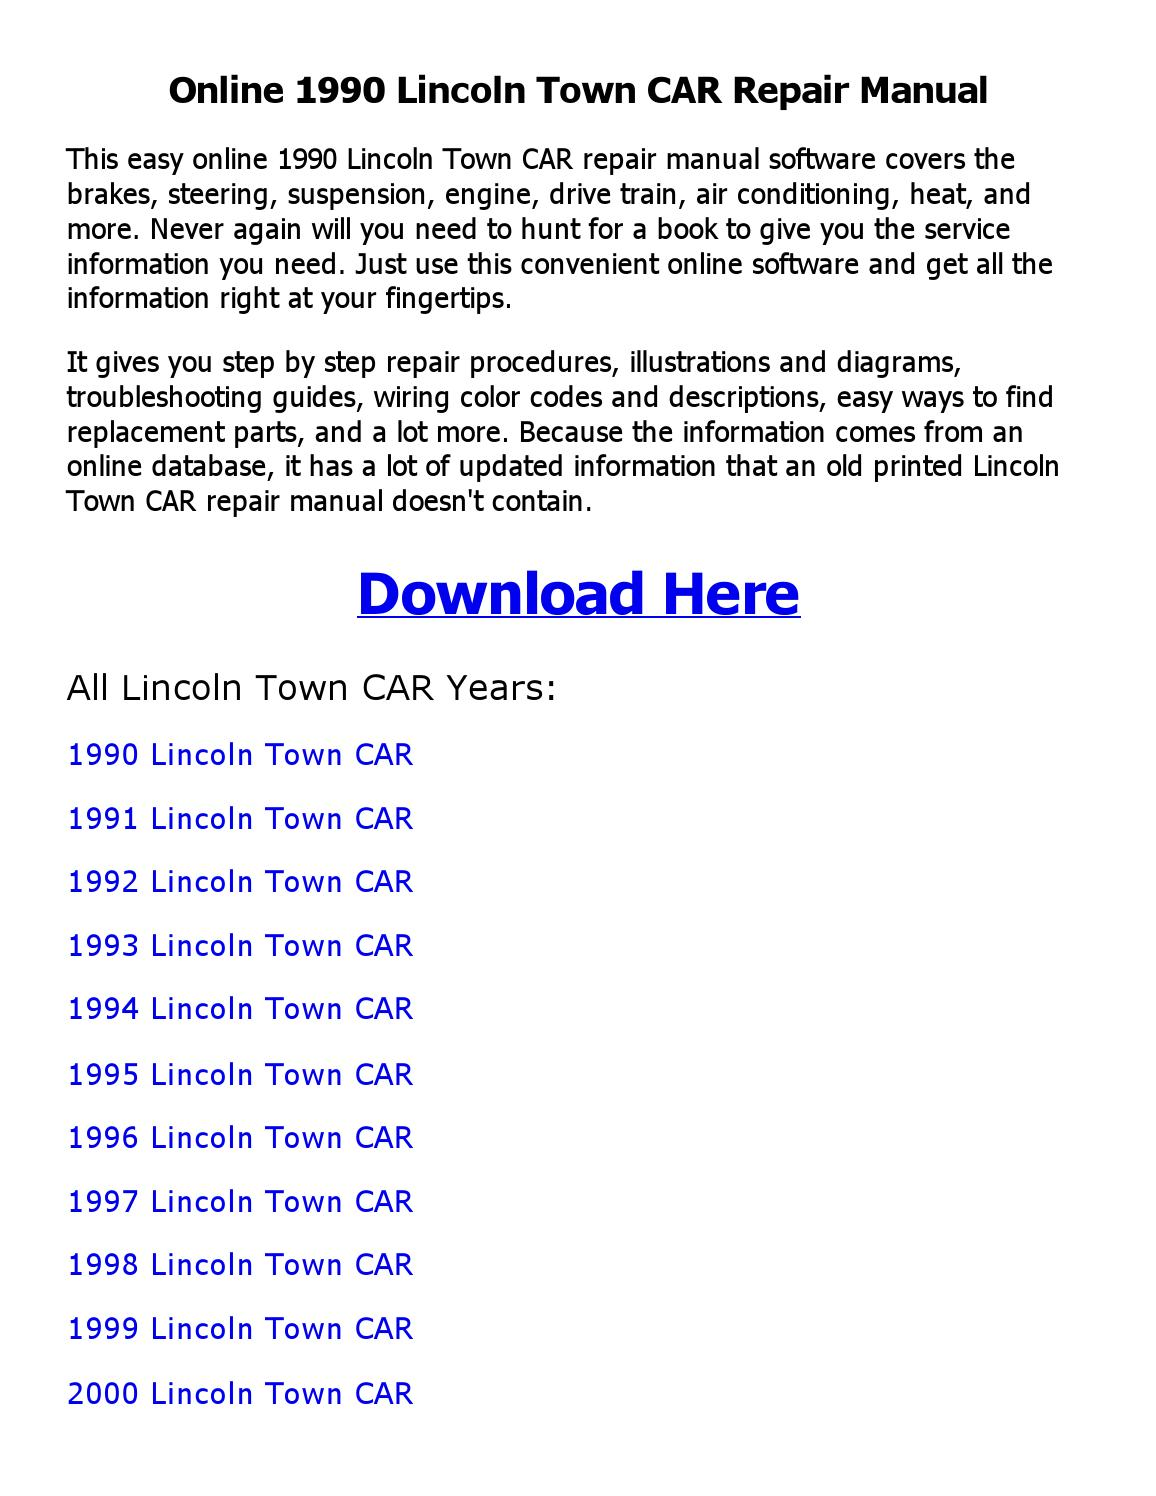 1993 lincoln town car engine diagram 1990 lincoln town car repair manual online by shoaibsiddique issuu  1990 lincoln town car repair manual